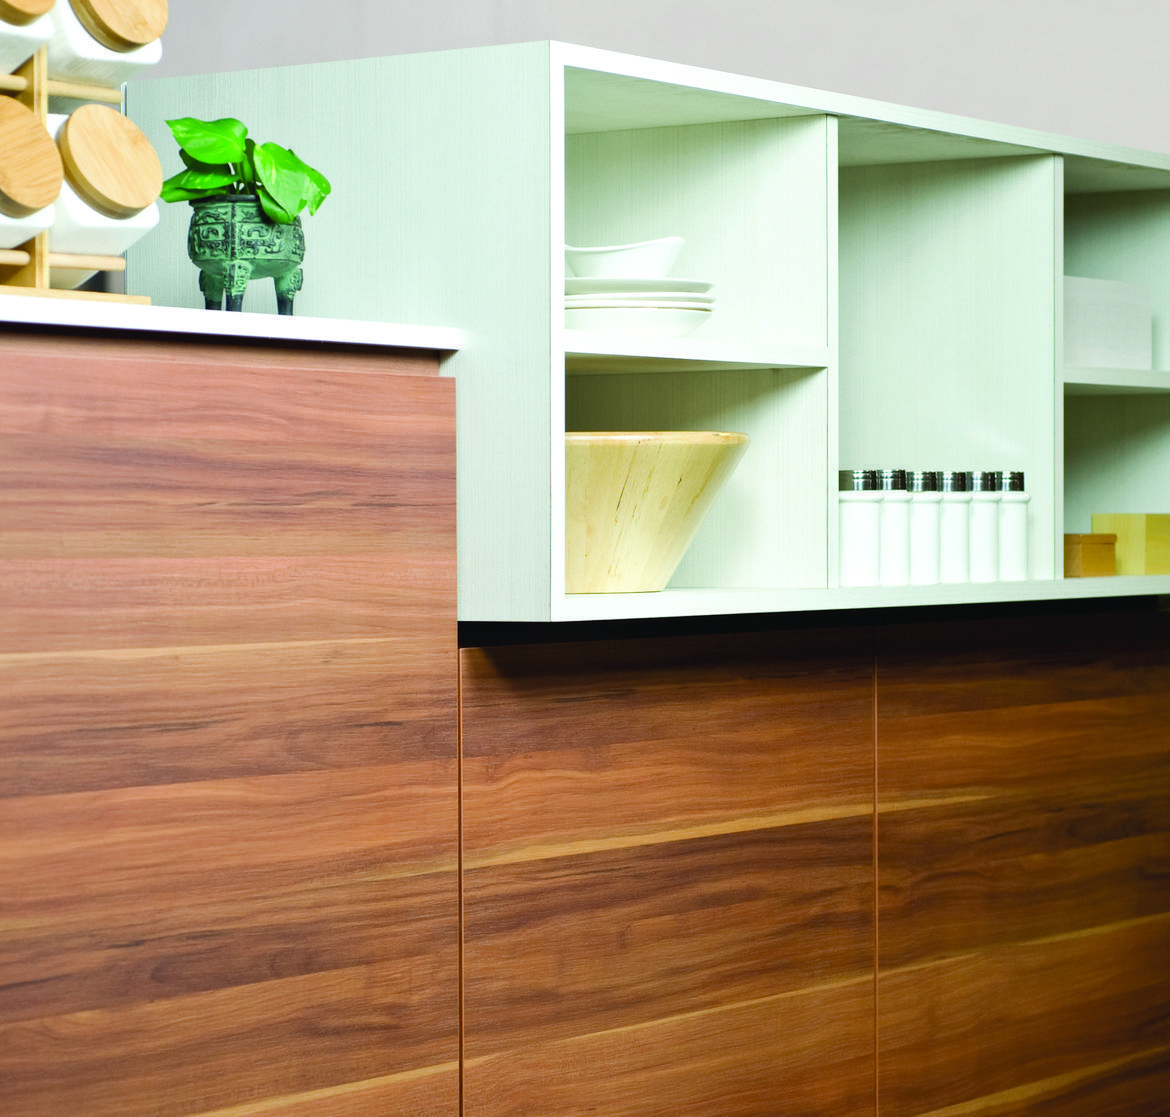 What You Need To Know: Laminate Cabinets